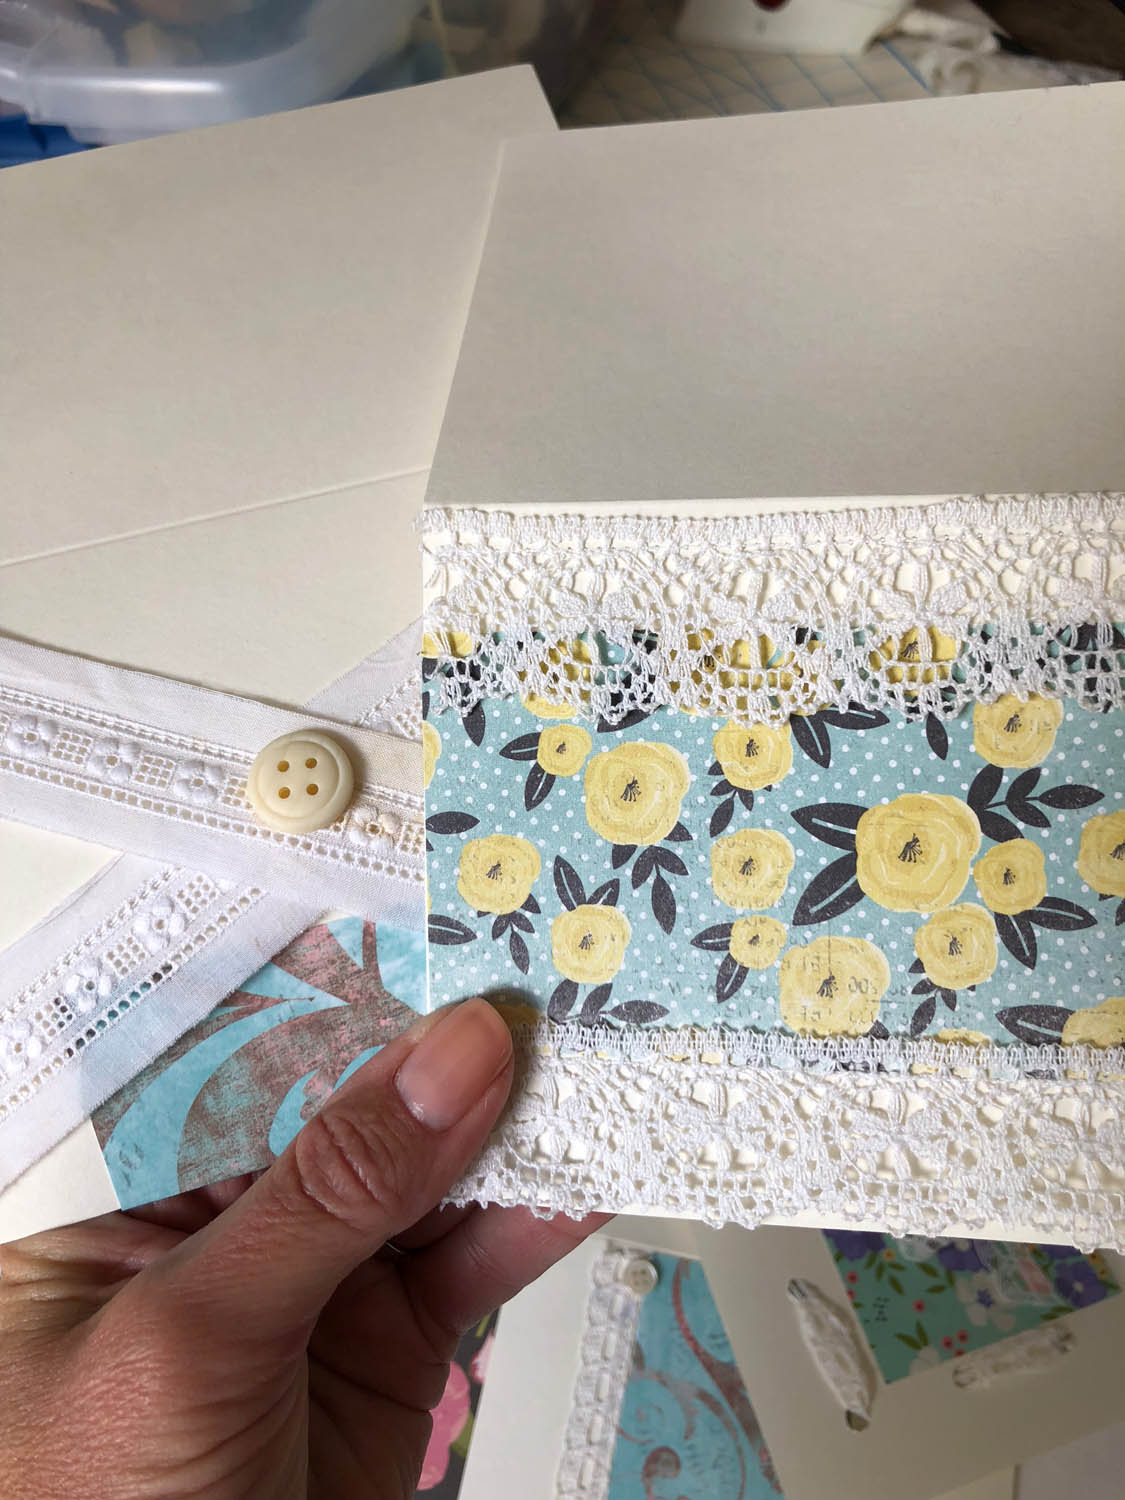 Hand embellished cards with scrapbook paper and lace sewn on for trim